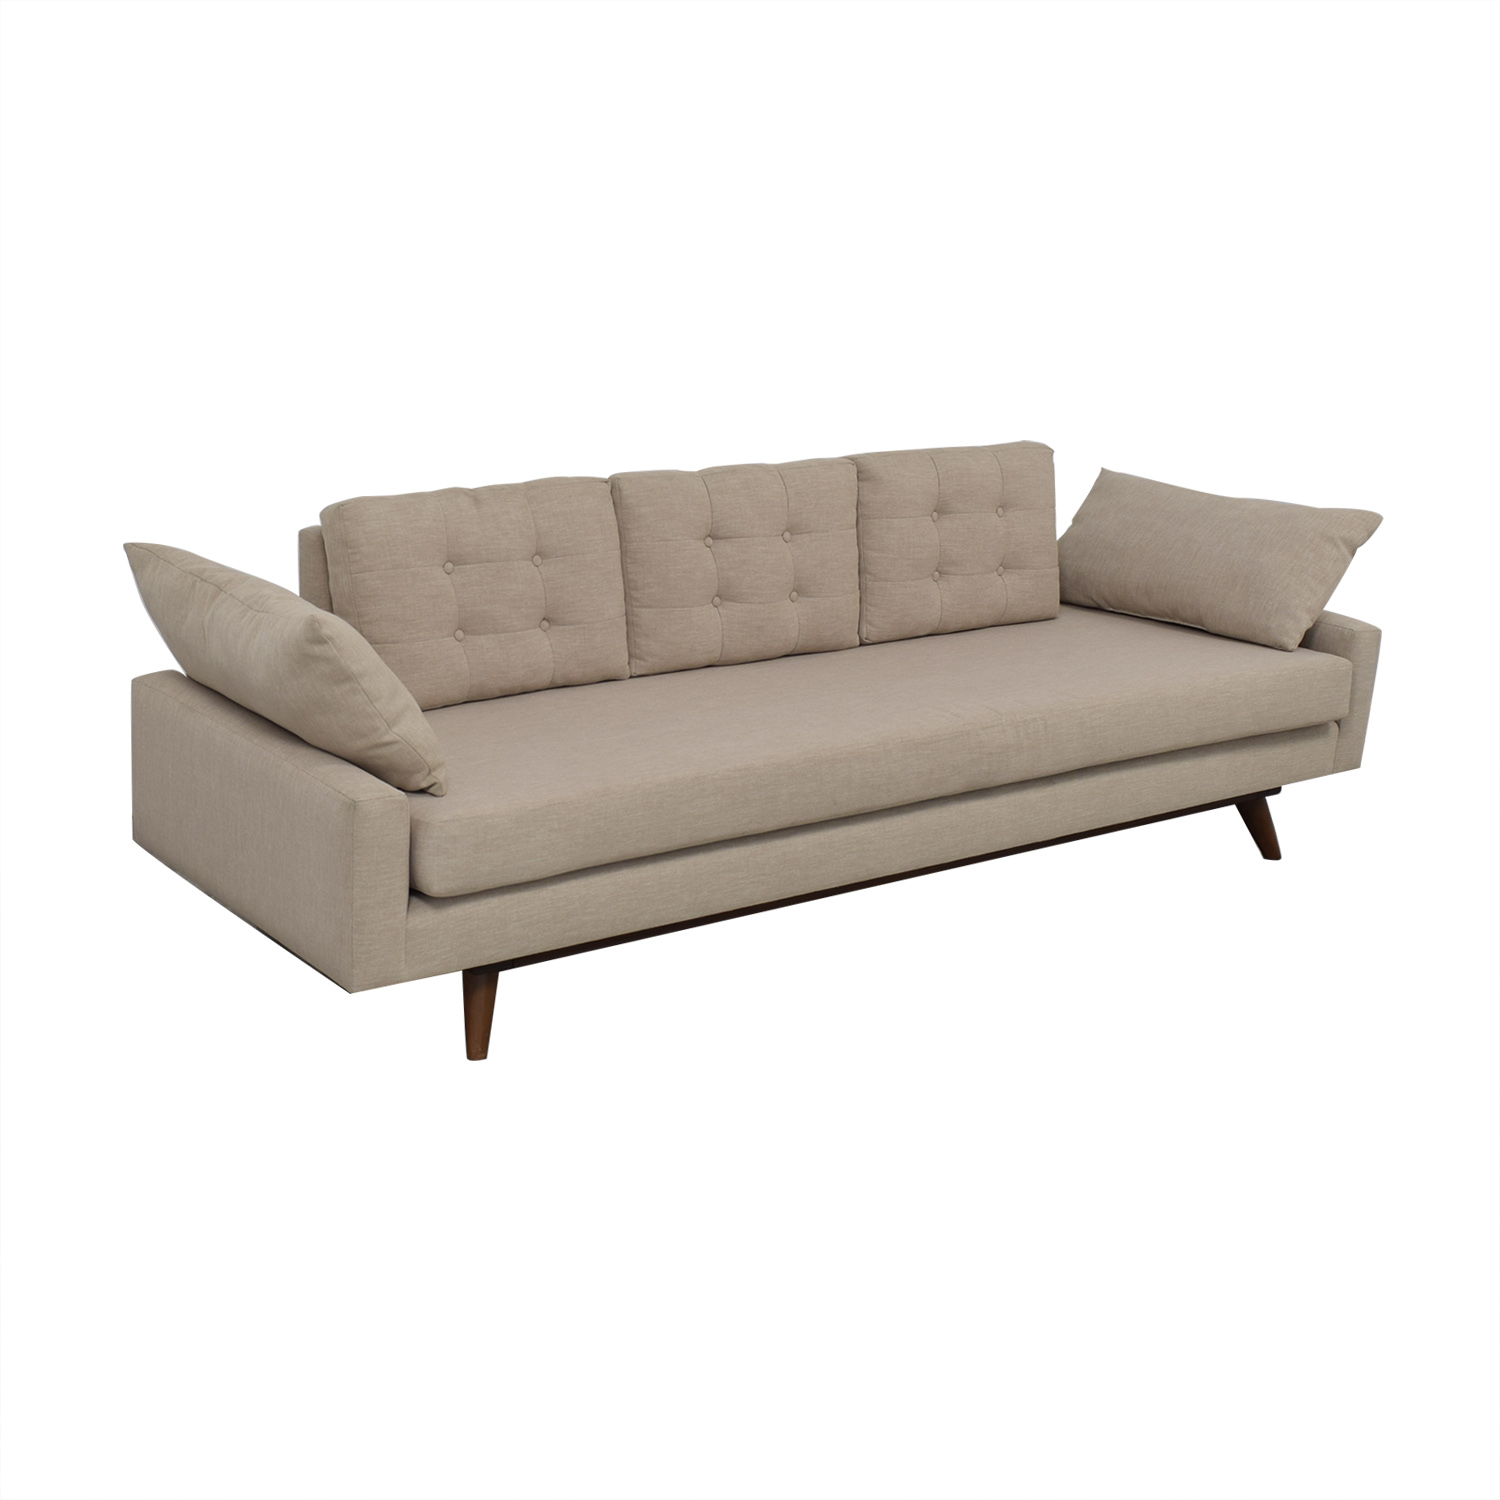 Thrive Thrive Furniture Mid-Century Sofa coupon